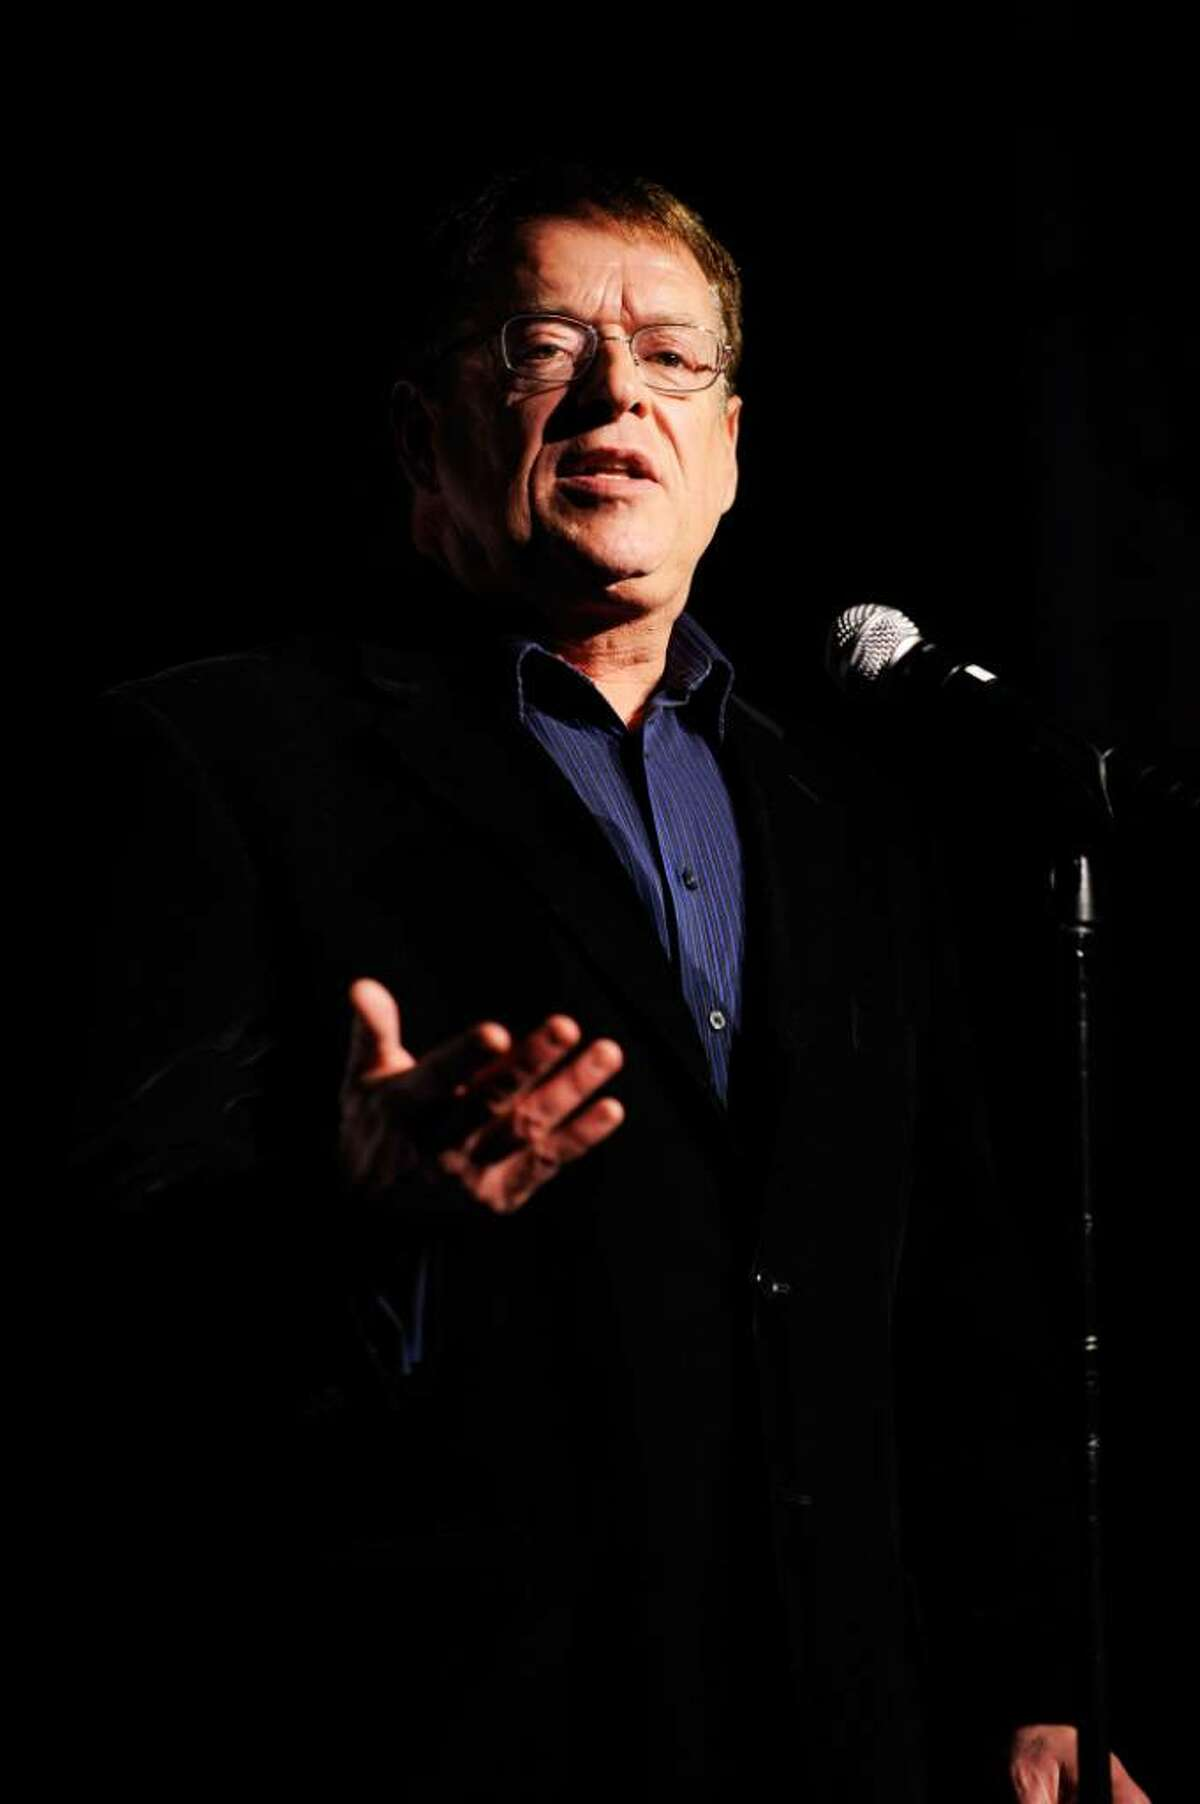 NEW YORK - NOVEMBER 10: Activist Cleve Jones speaks onstage at The 2009 Emery Awards and 30th Anniversary of the Hetrick-Martin Institute at Cipriani, Wall Street on November 10, 2009 in New York City. (Photo by Larry Busacca/Getty Images for Macy's)